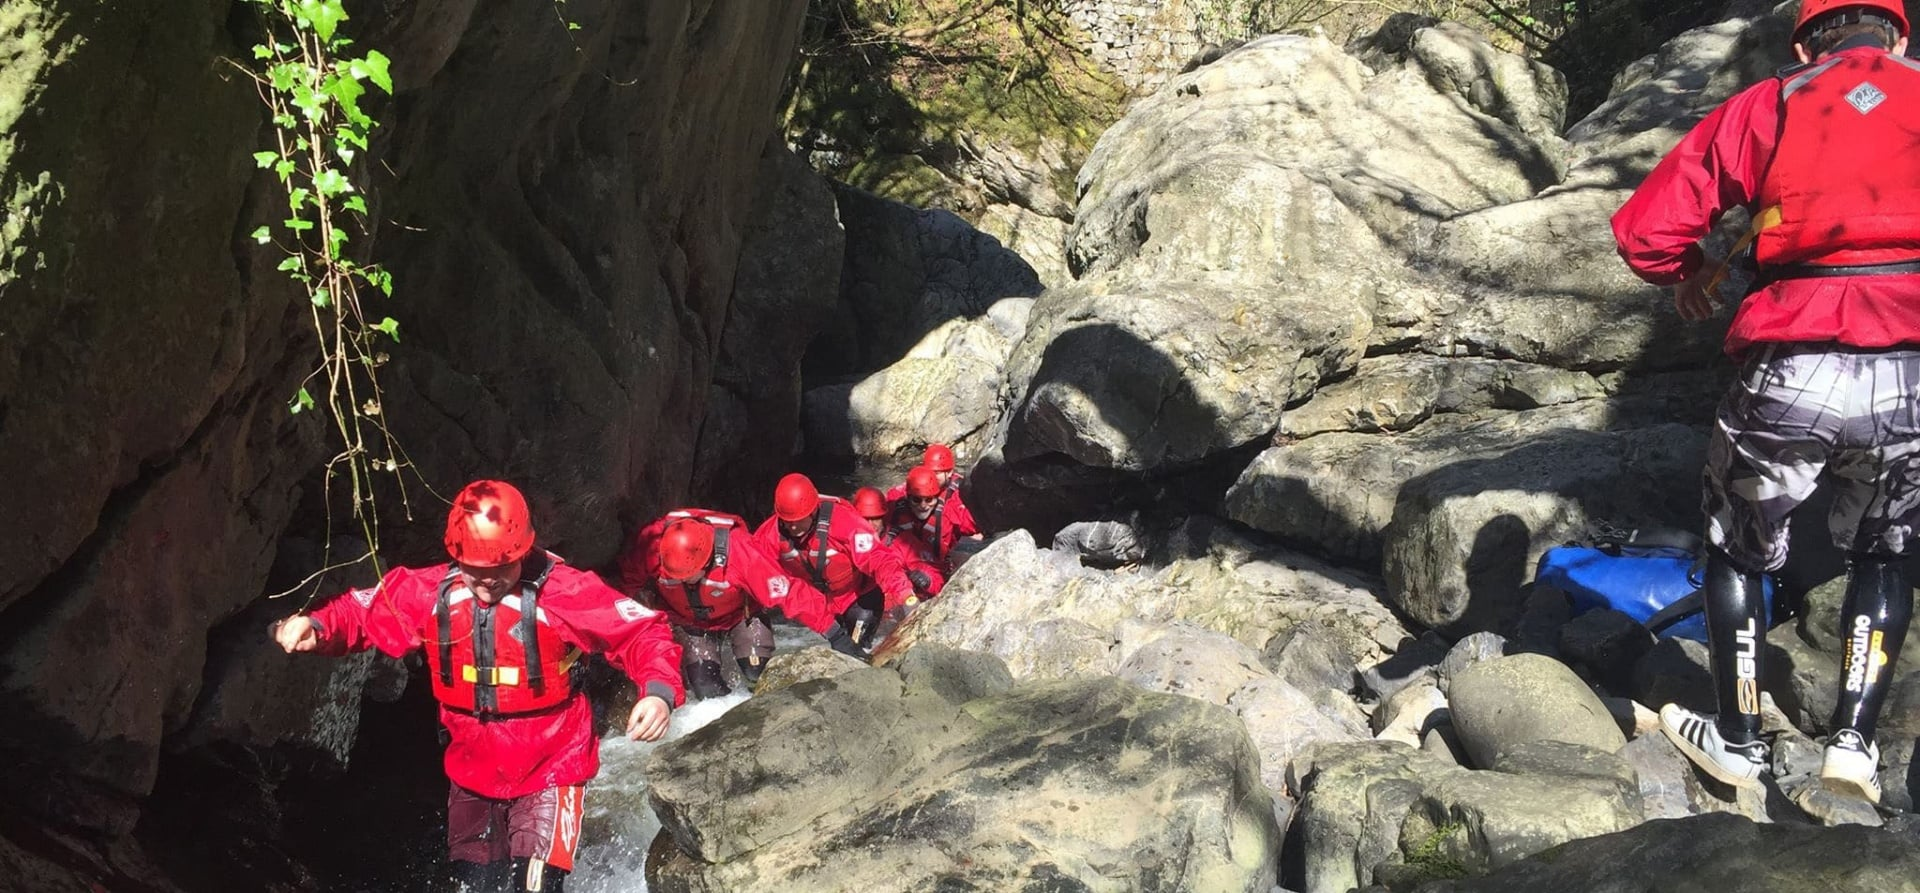 Gorge Walking in Glamorgan - Half Day Adventure for 2-4